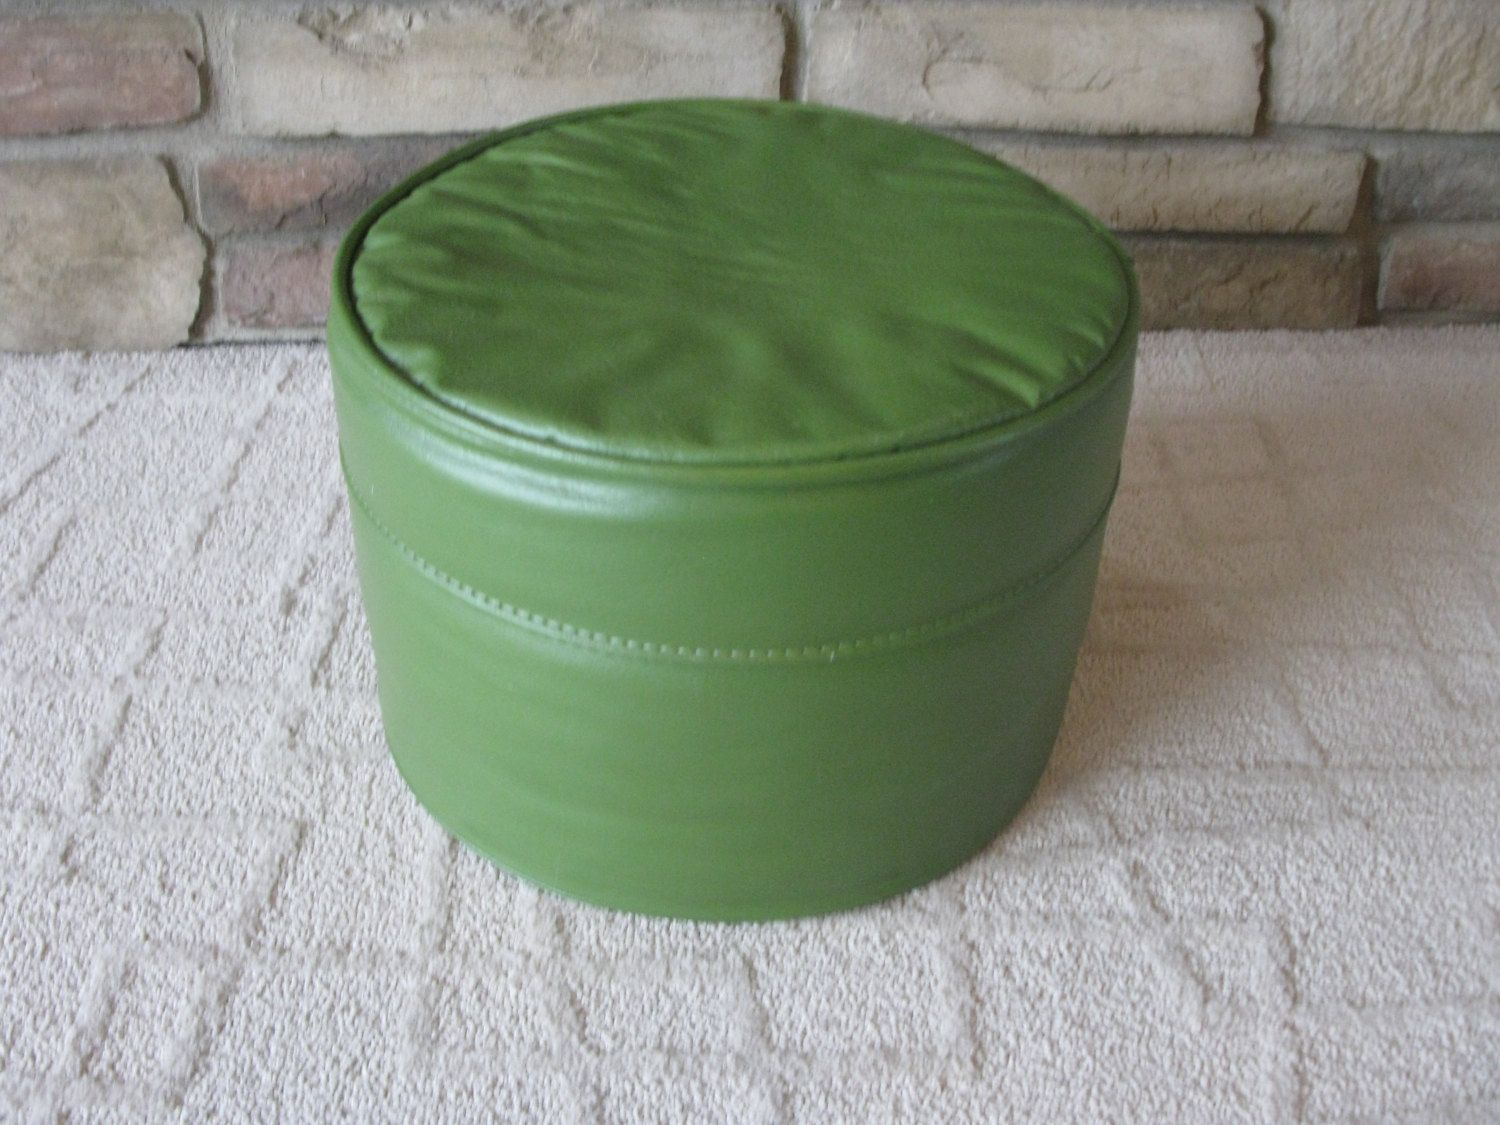 Mid Century Avocado Green Ottoman Footstool Hassock Faux Leather Round Green Vintage Hassock Mid Cen Avocado Green Green Ottoman Mid Century Ottoman